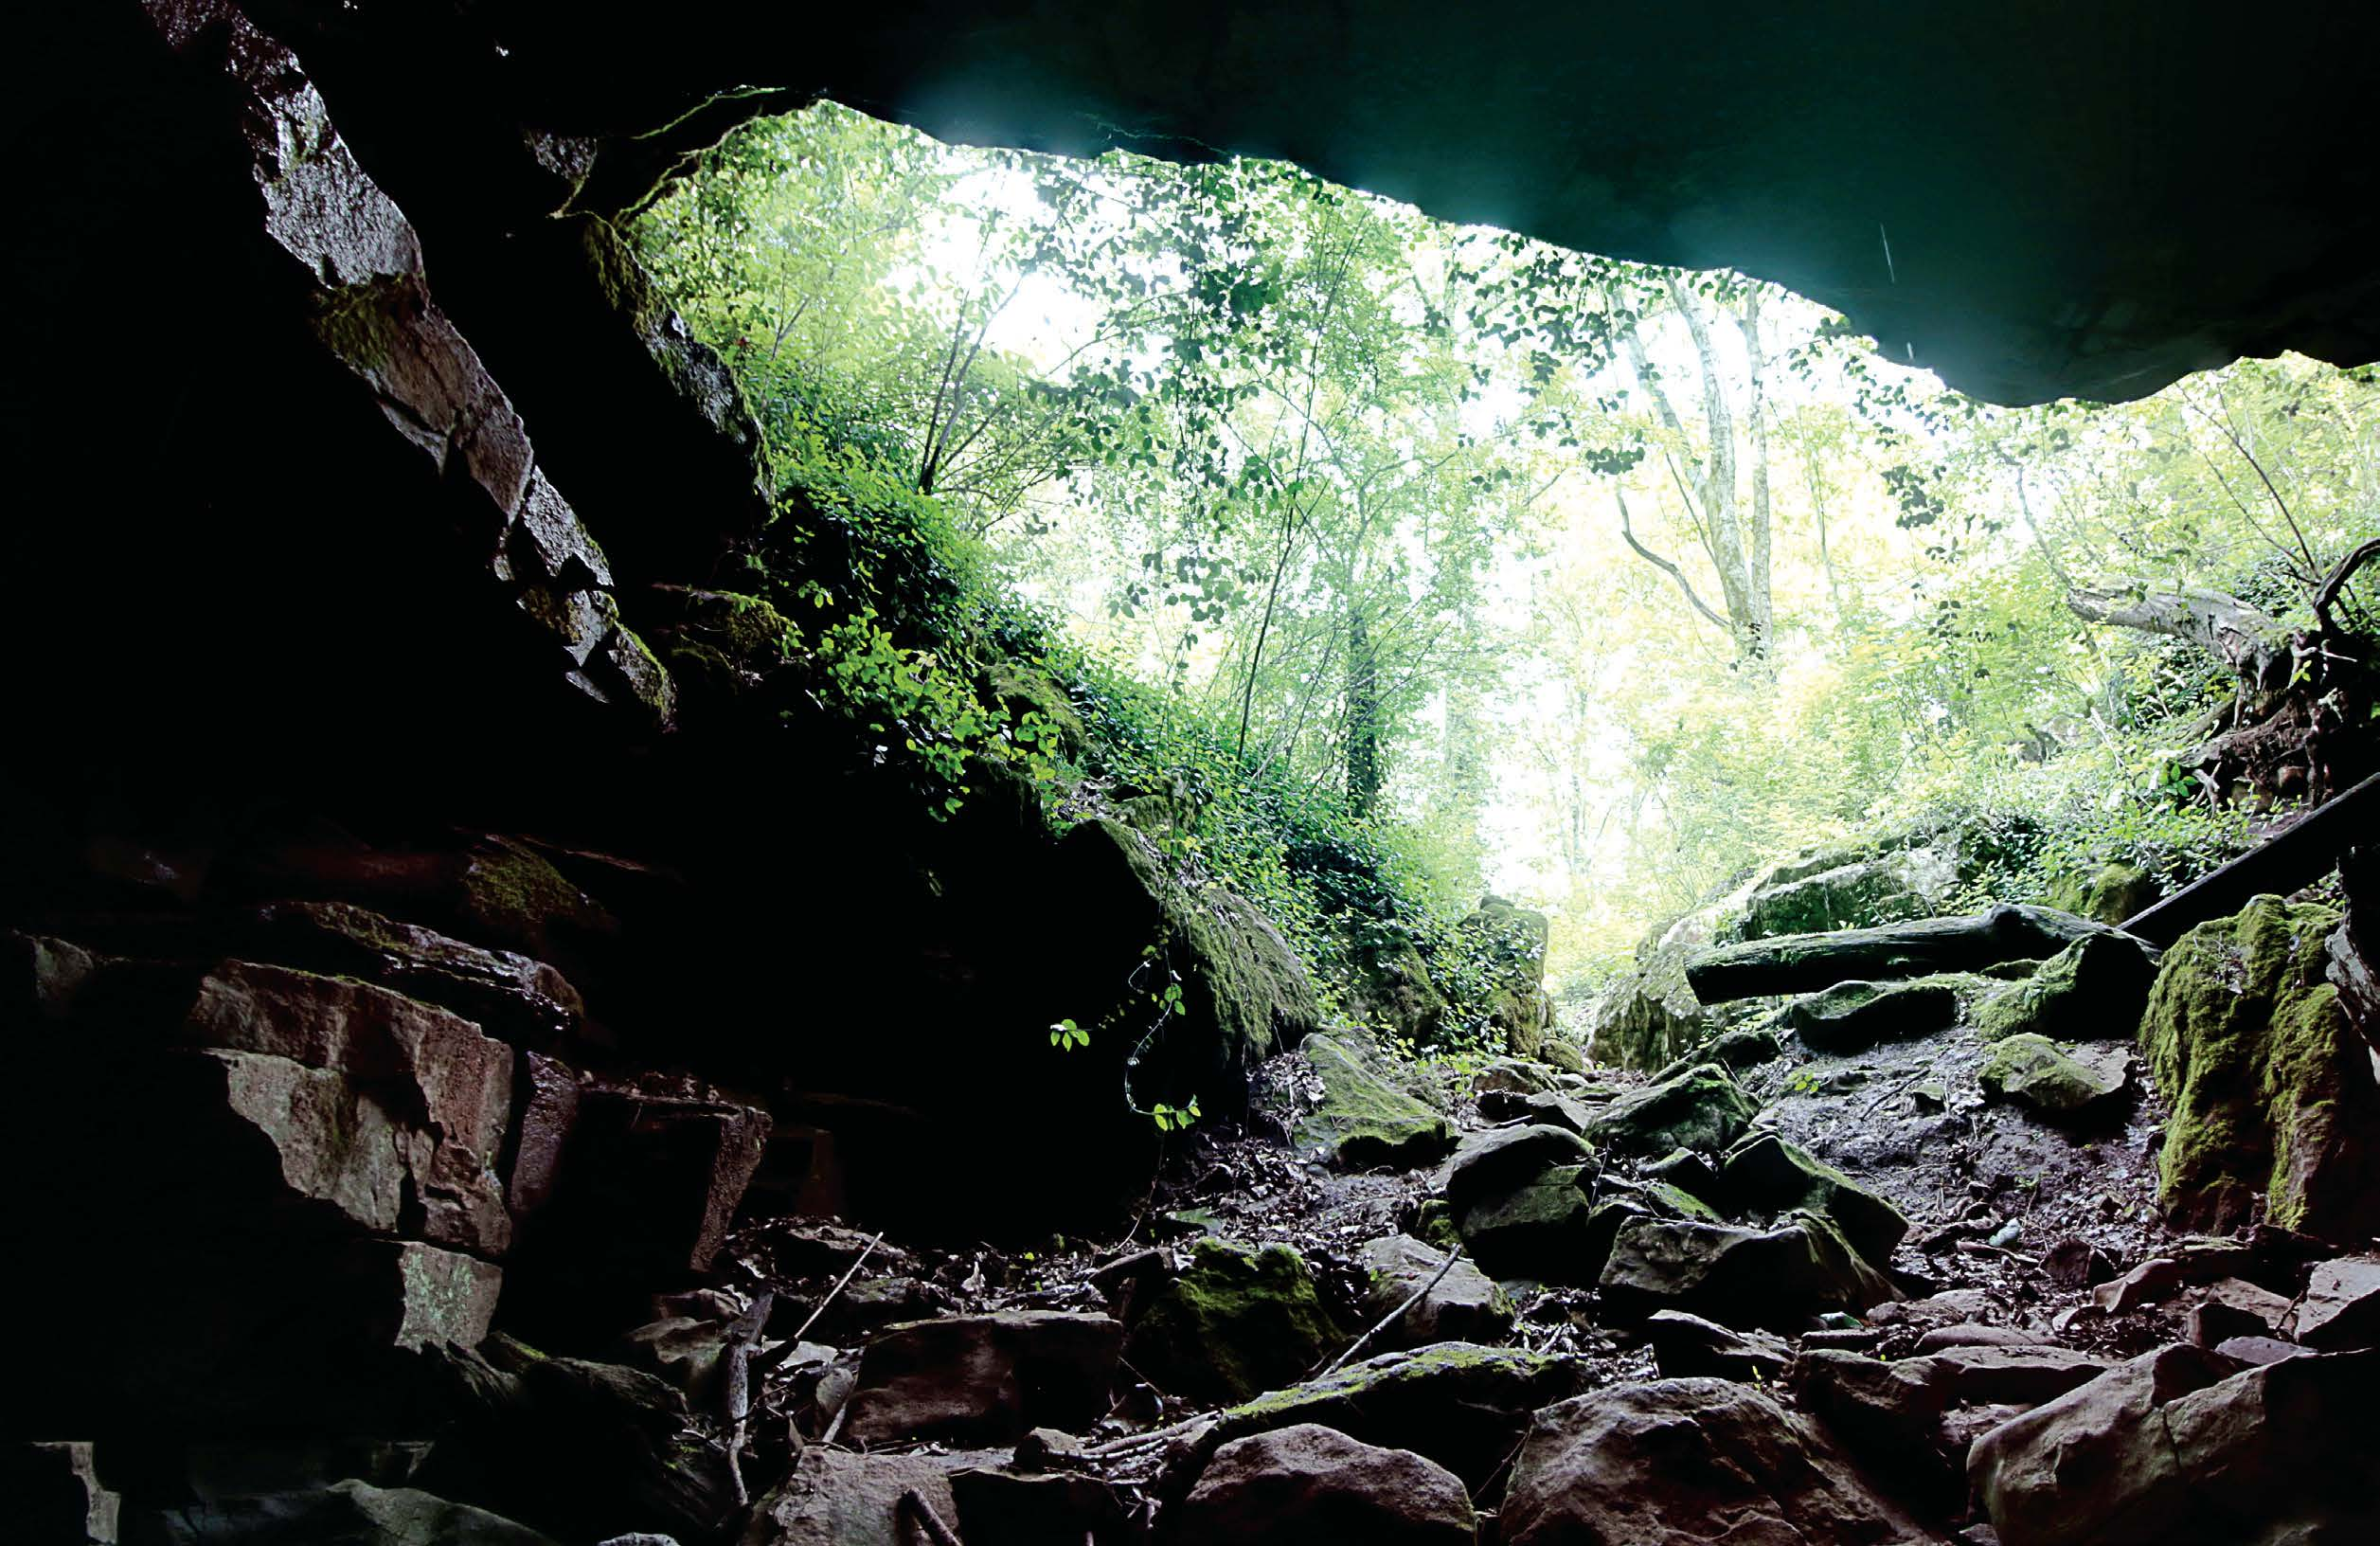 Protecting Groundwater In A Karst Landscape Takes